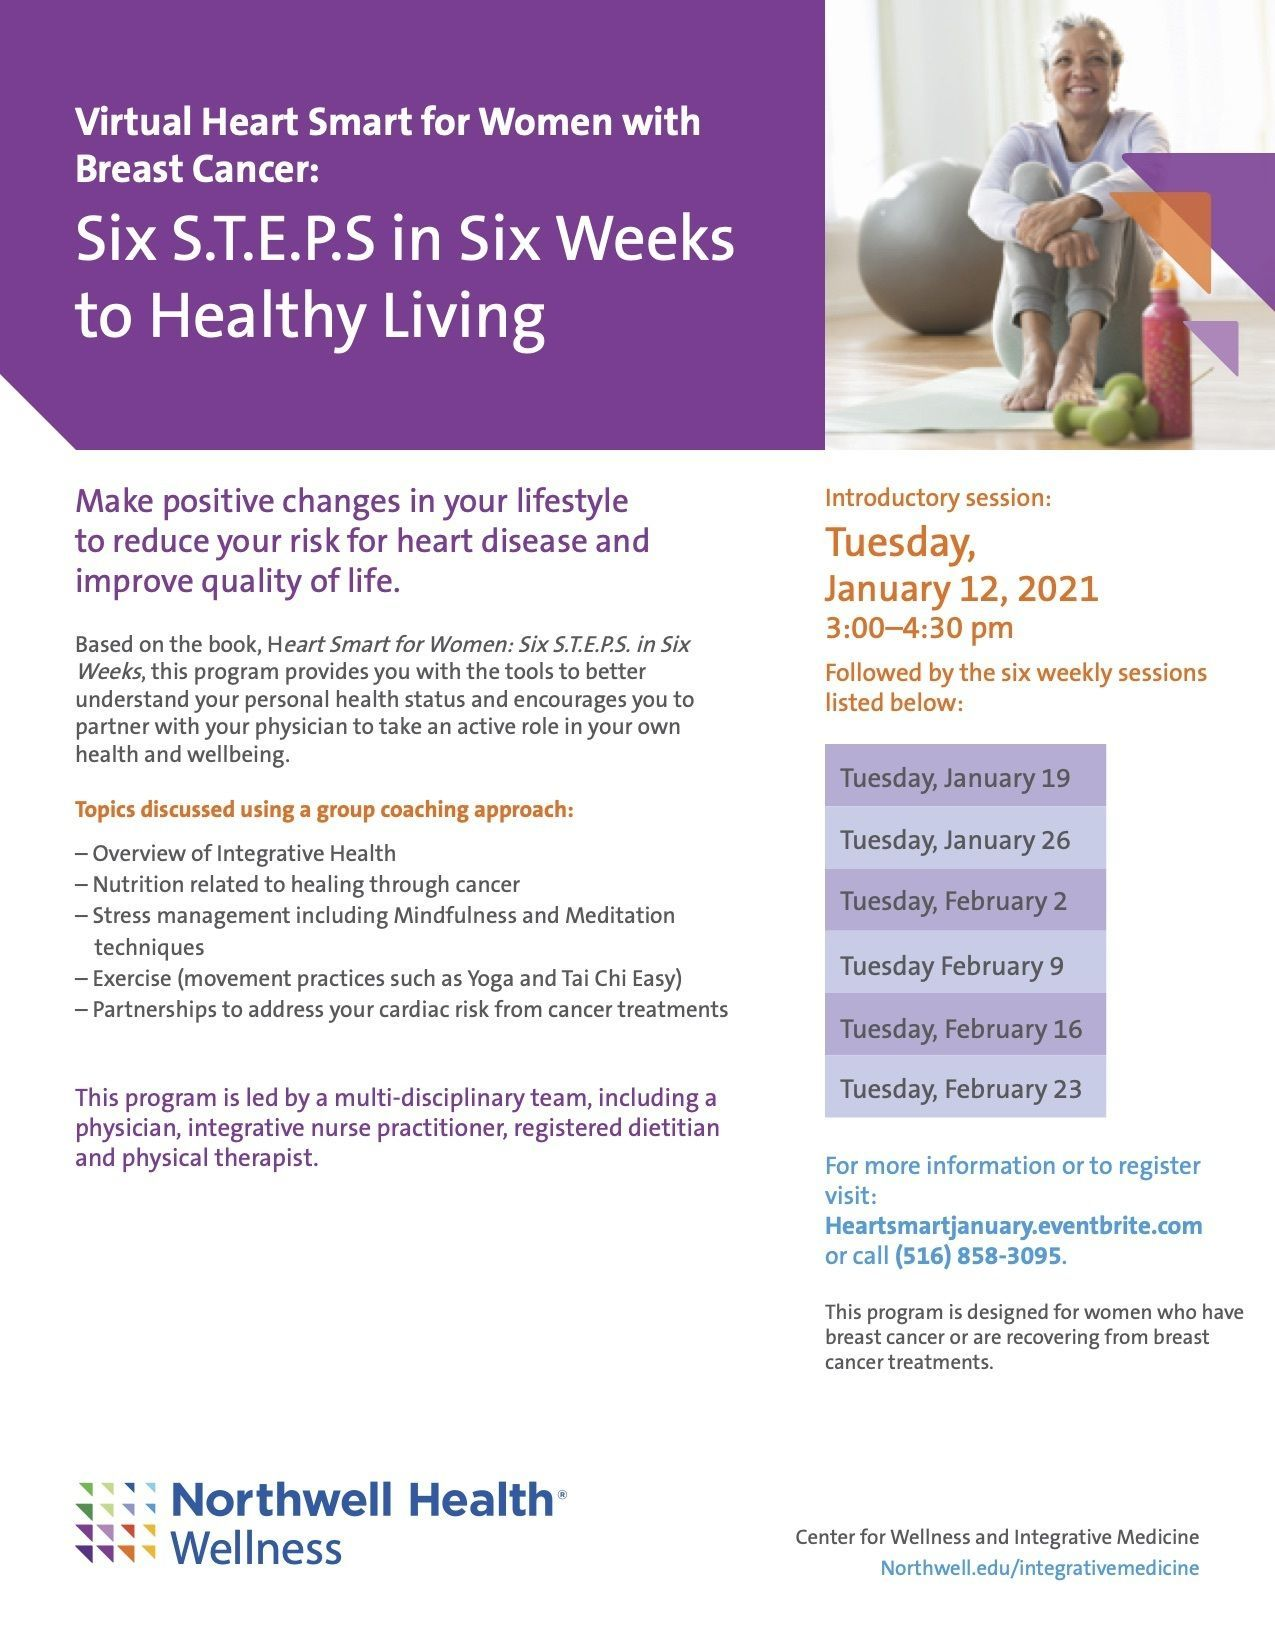 Six S.T.E.P.S. in Six Weeks to Healthy Living